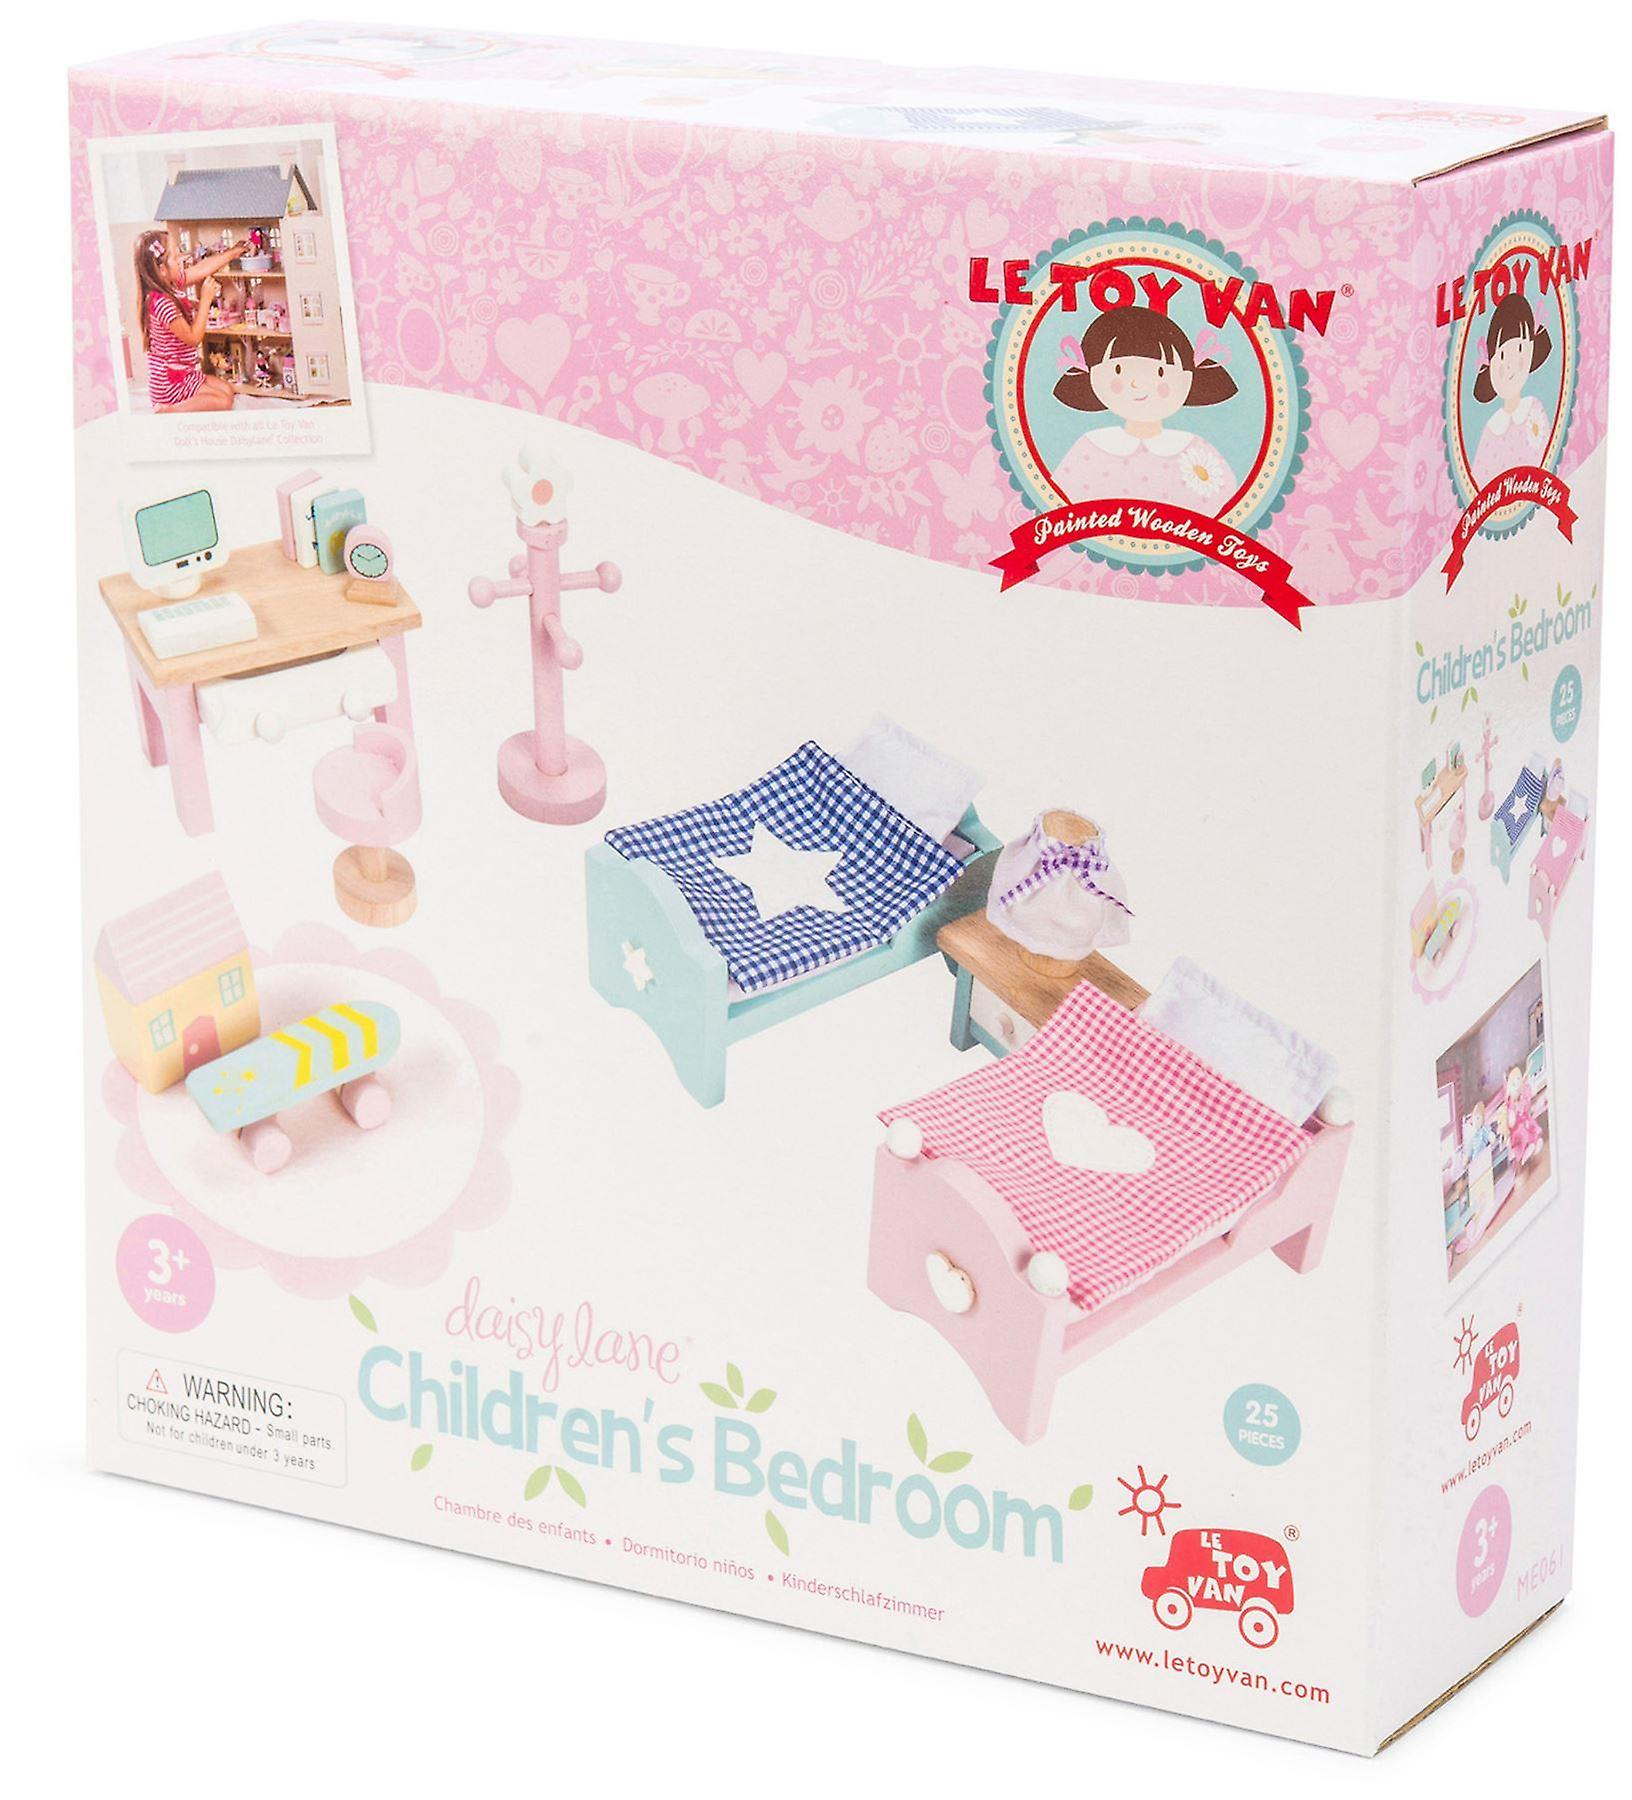 Le Toy Van Doll House Daisylane Childrens Bedroom